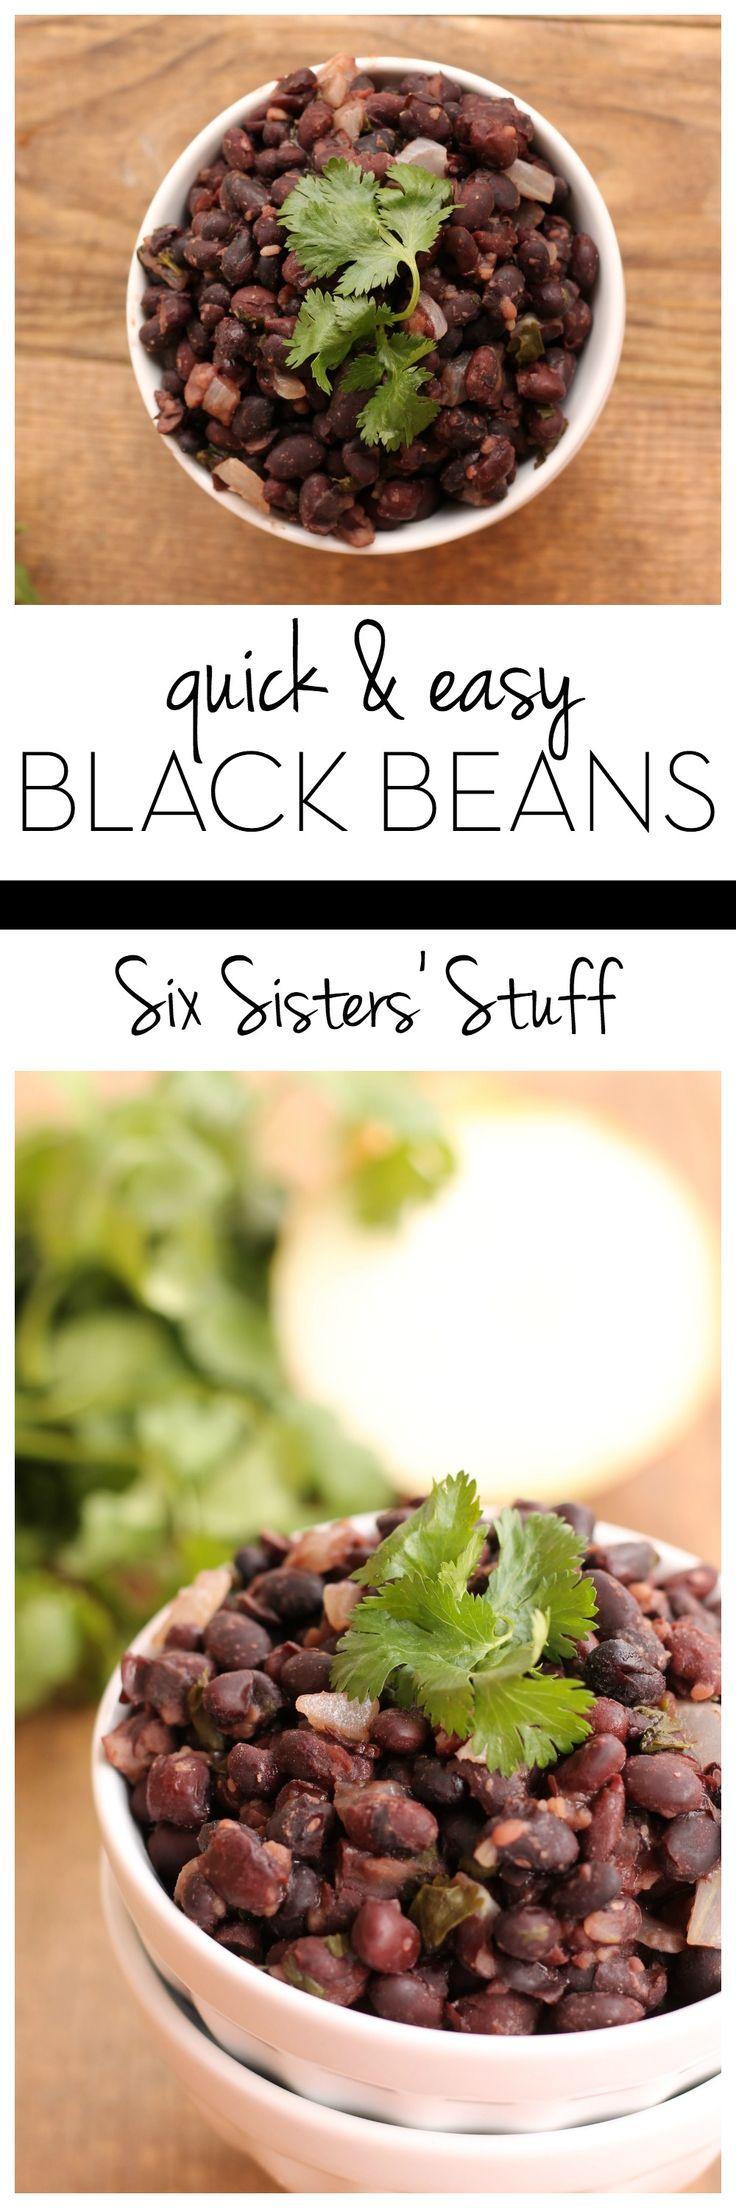 These black beans make a great side dish or topping for all your favorite Mexican dishes   SixSistersStuff.com